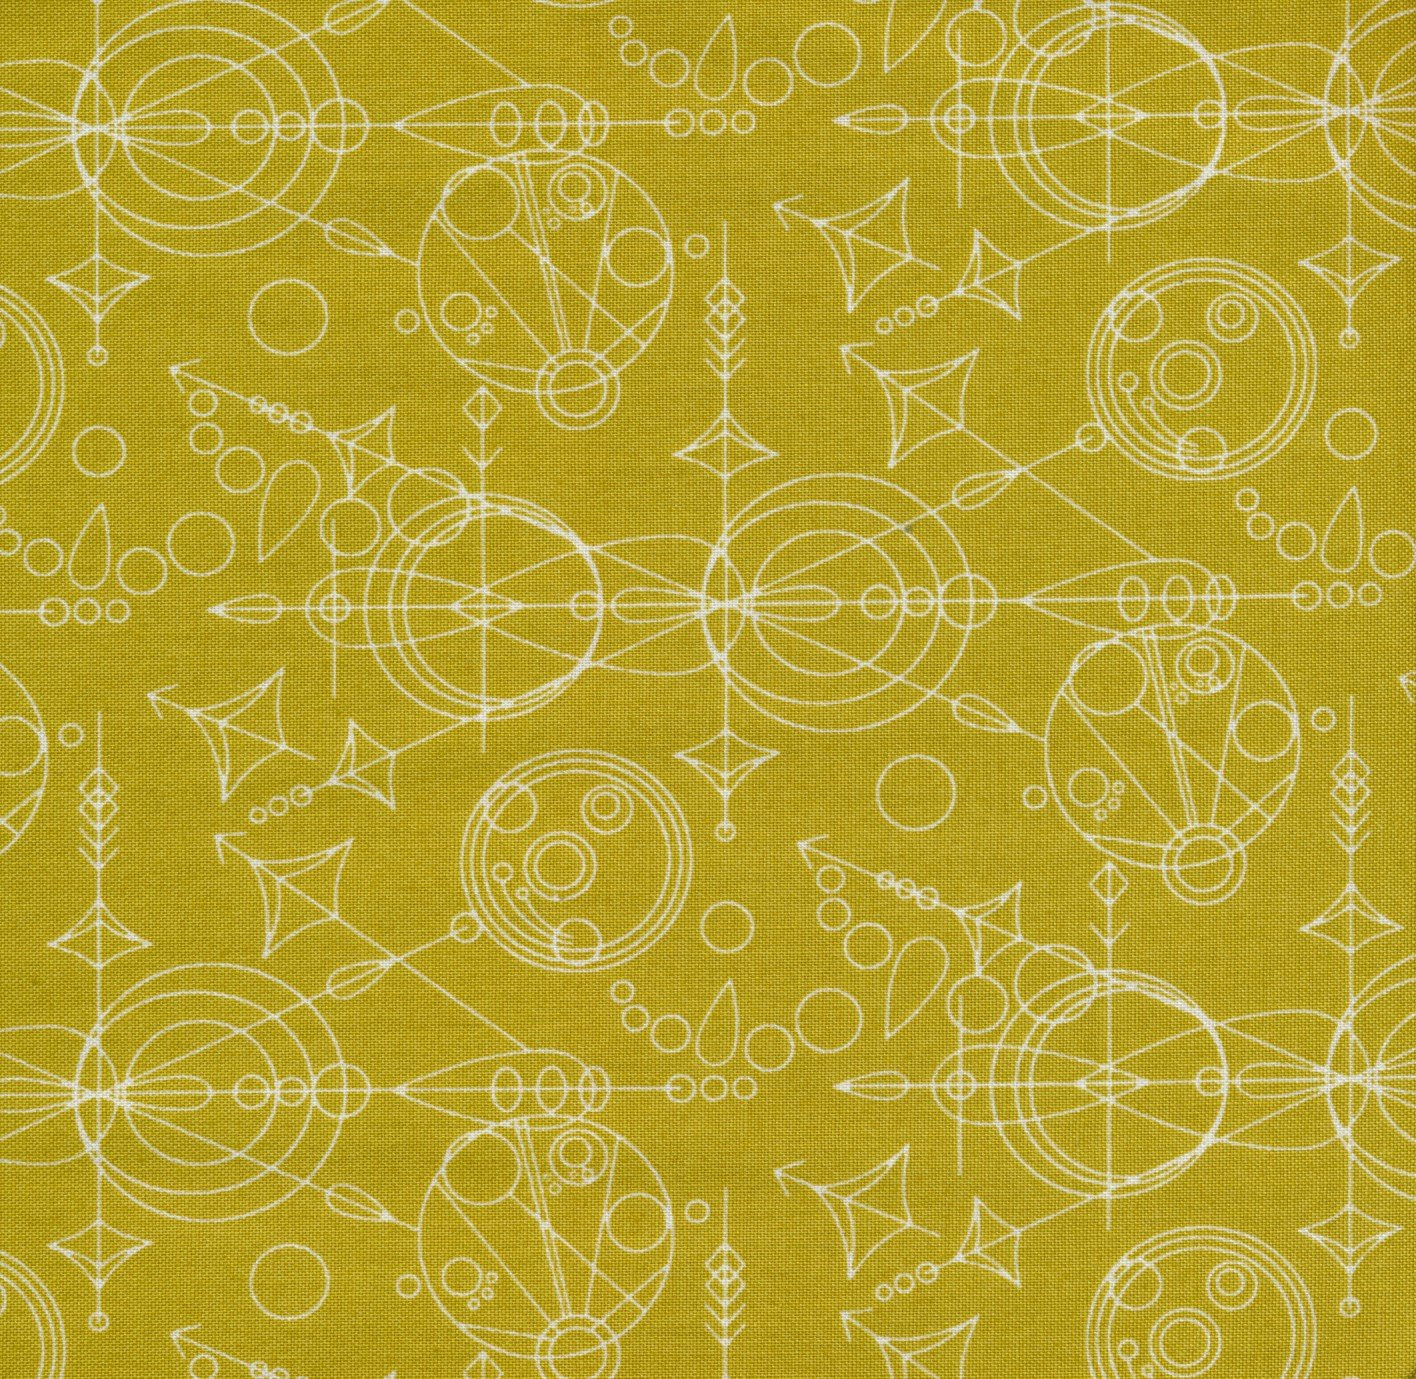 Sun Prints: Mercury in Chartreuse